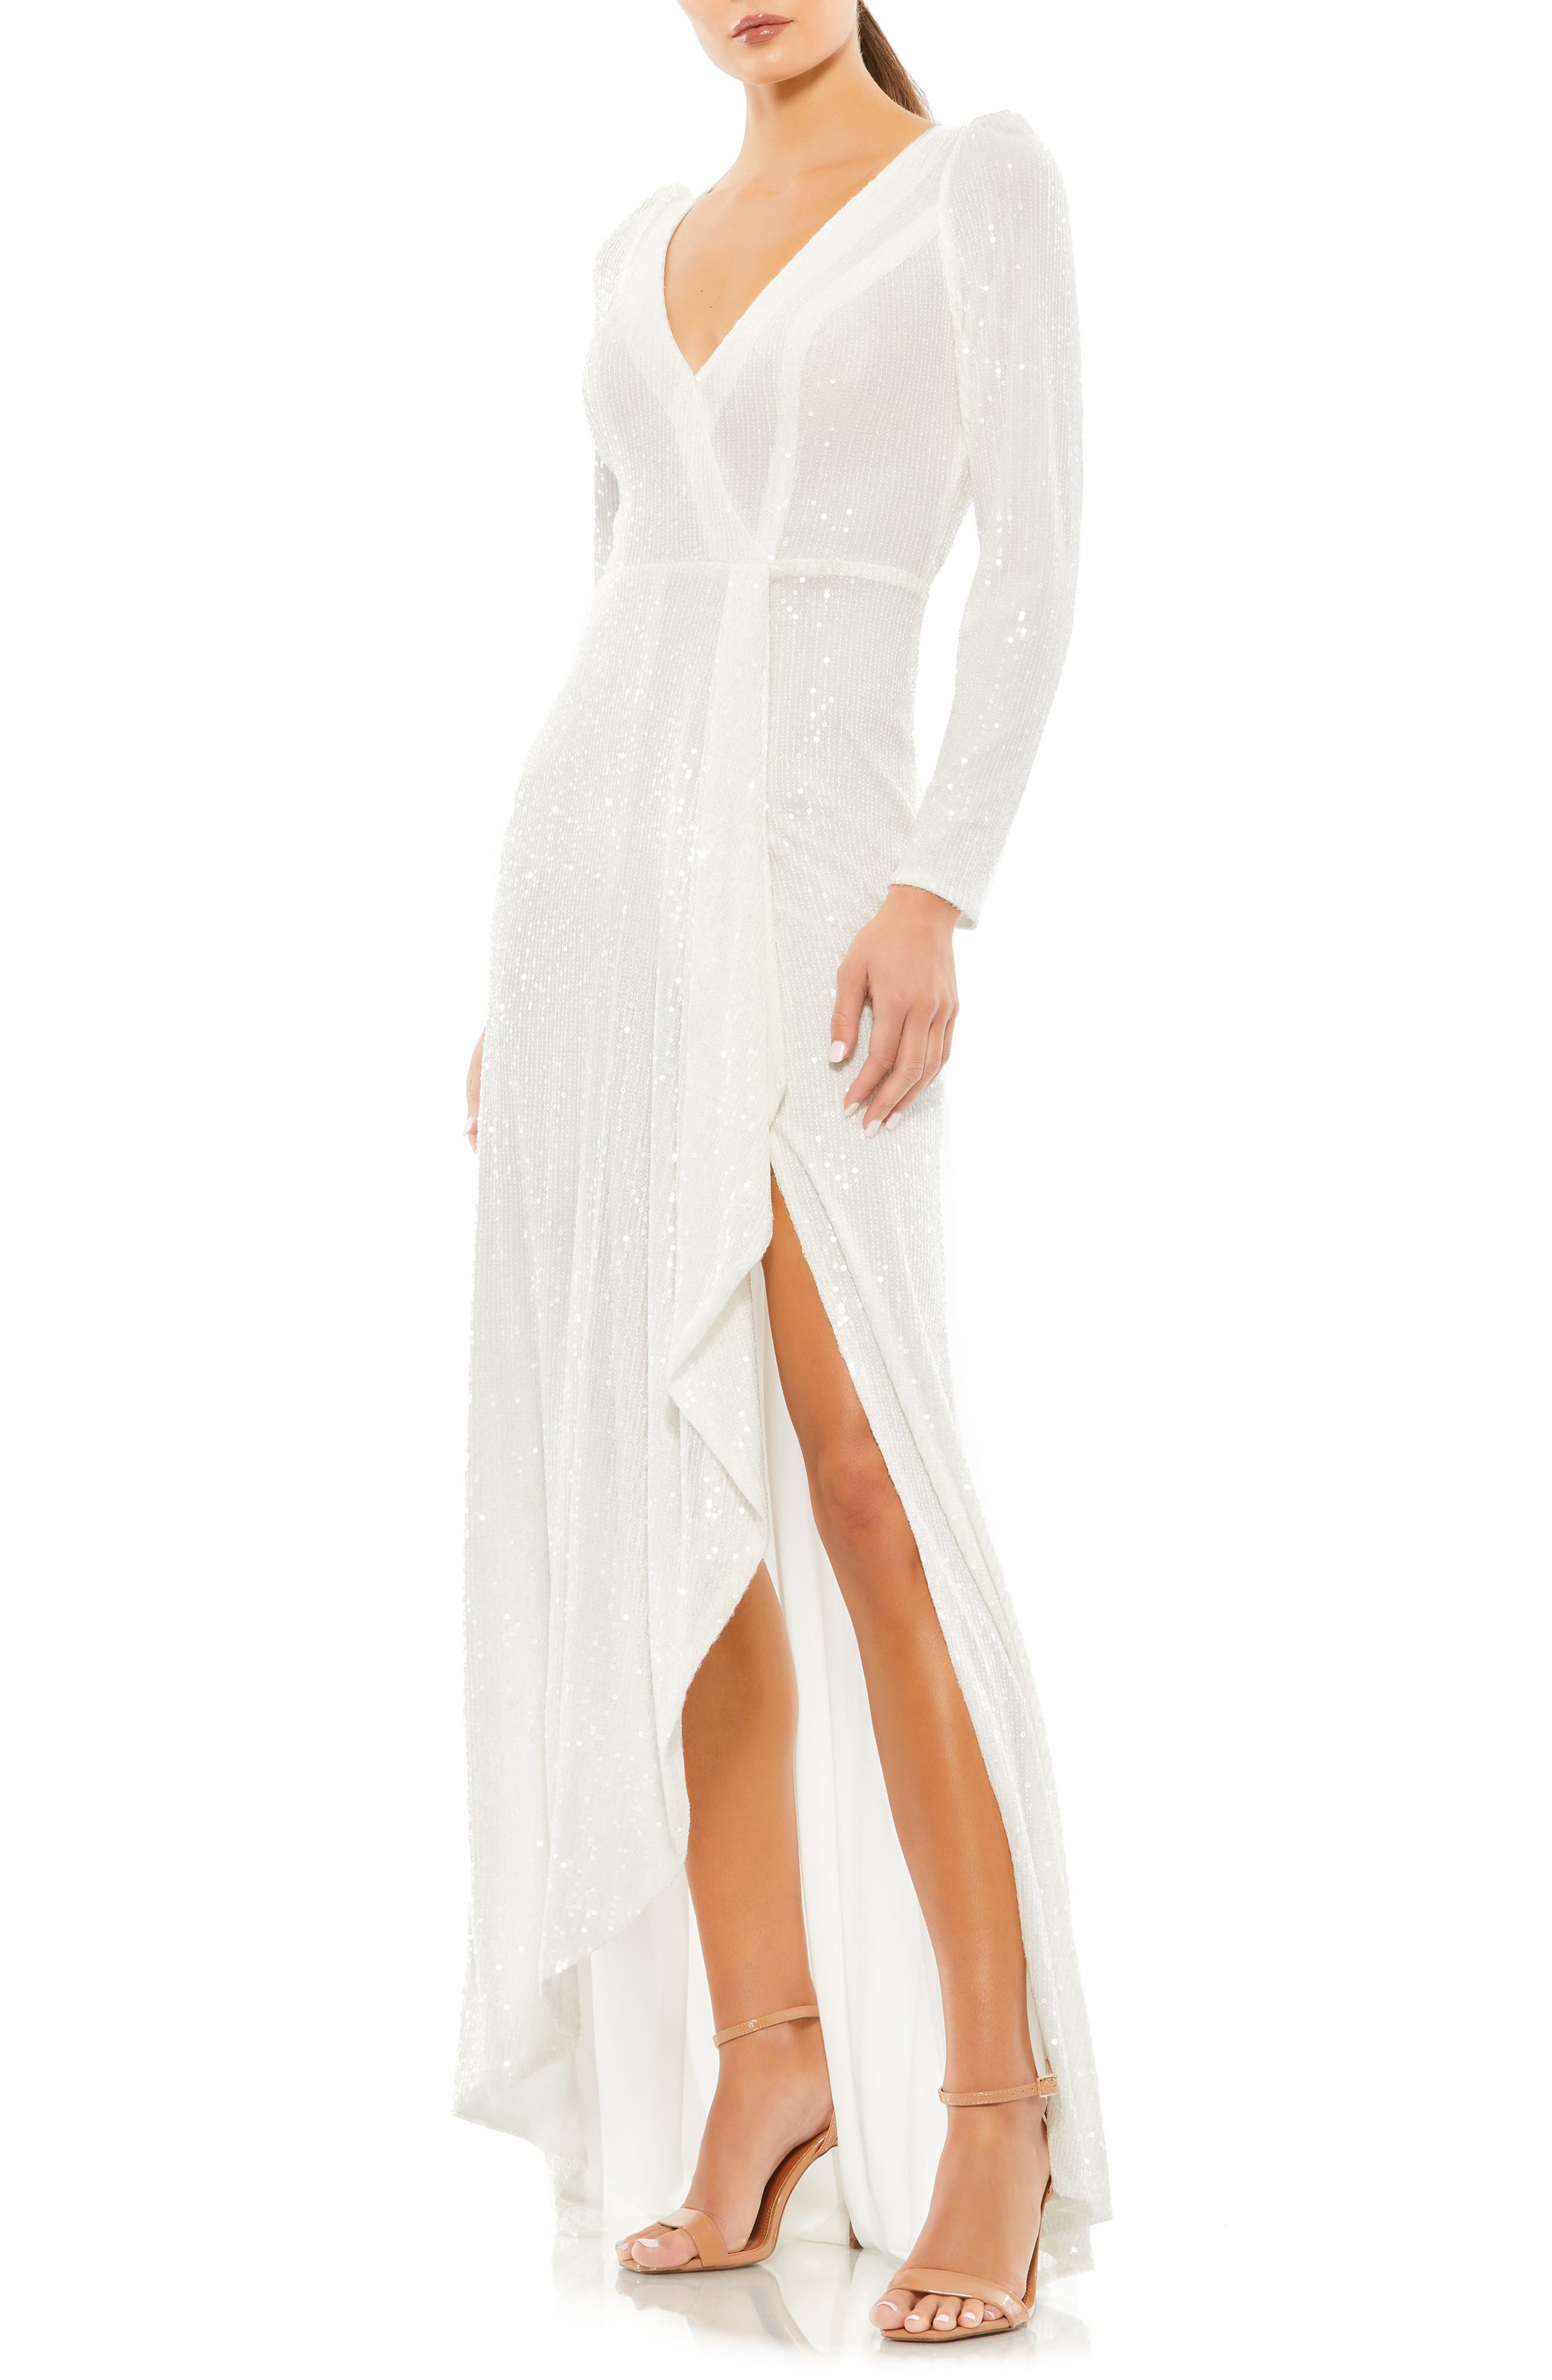 60s Wedding Dresses   70s Wedding Dresses Ieena for Mac Duggal Long Sleeve Sequin Wrap Gown Size 10 in White at Nordstrom $398.00 AT vintagedancer.com